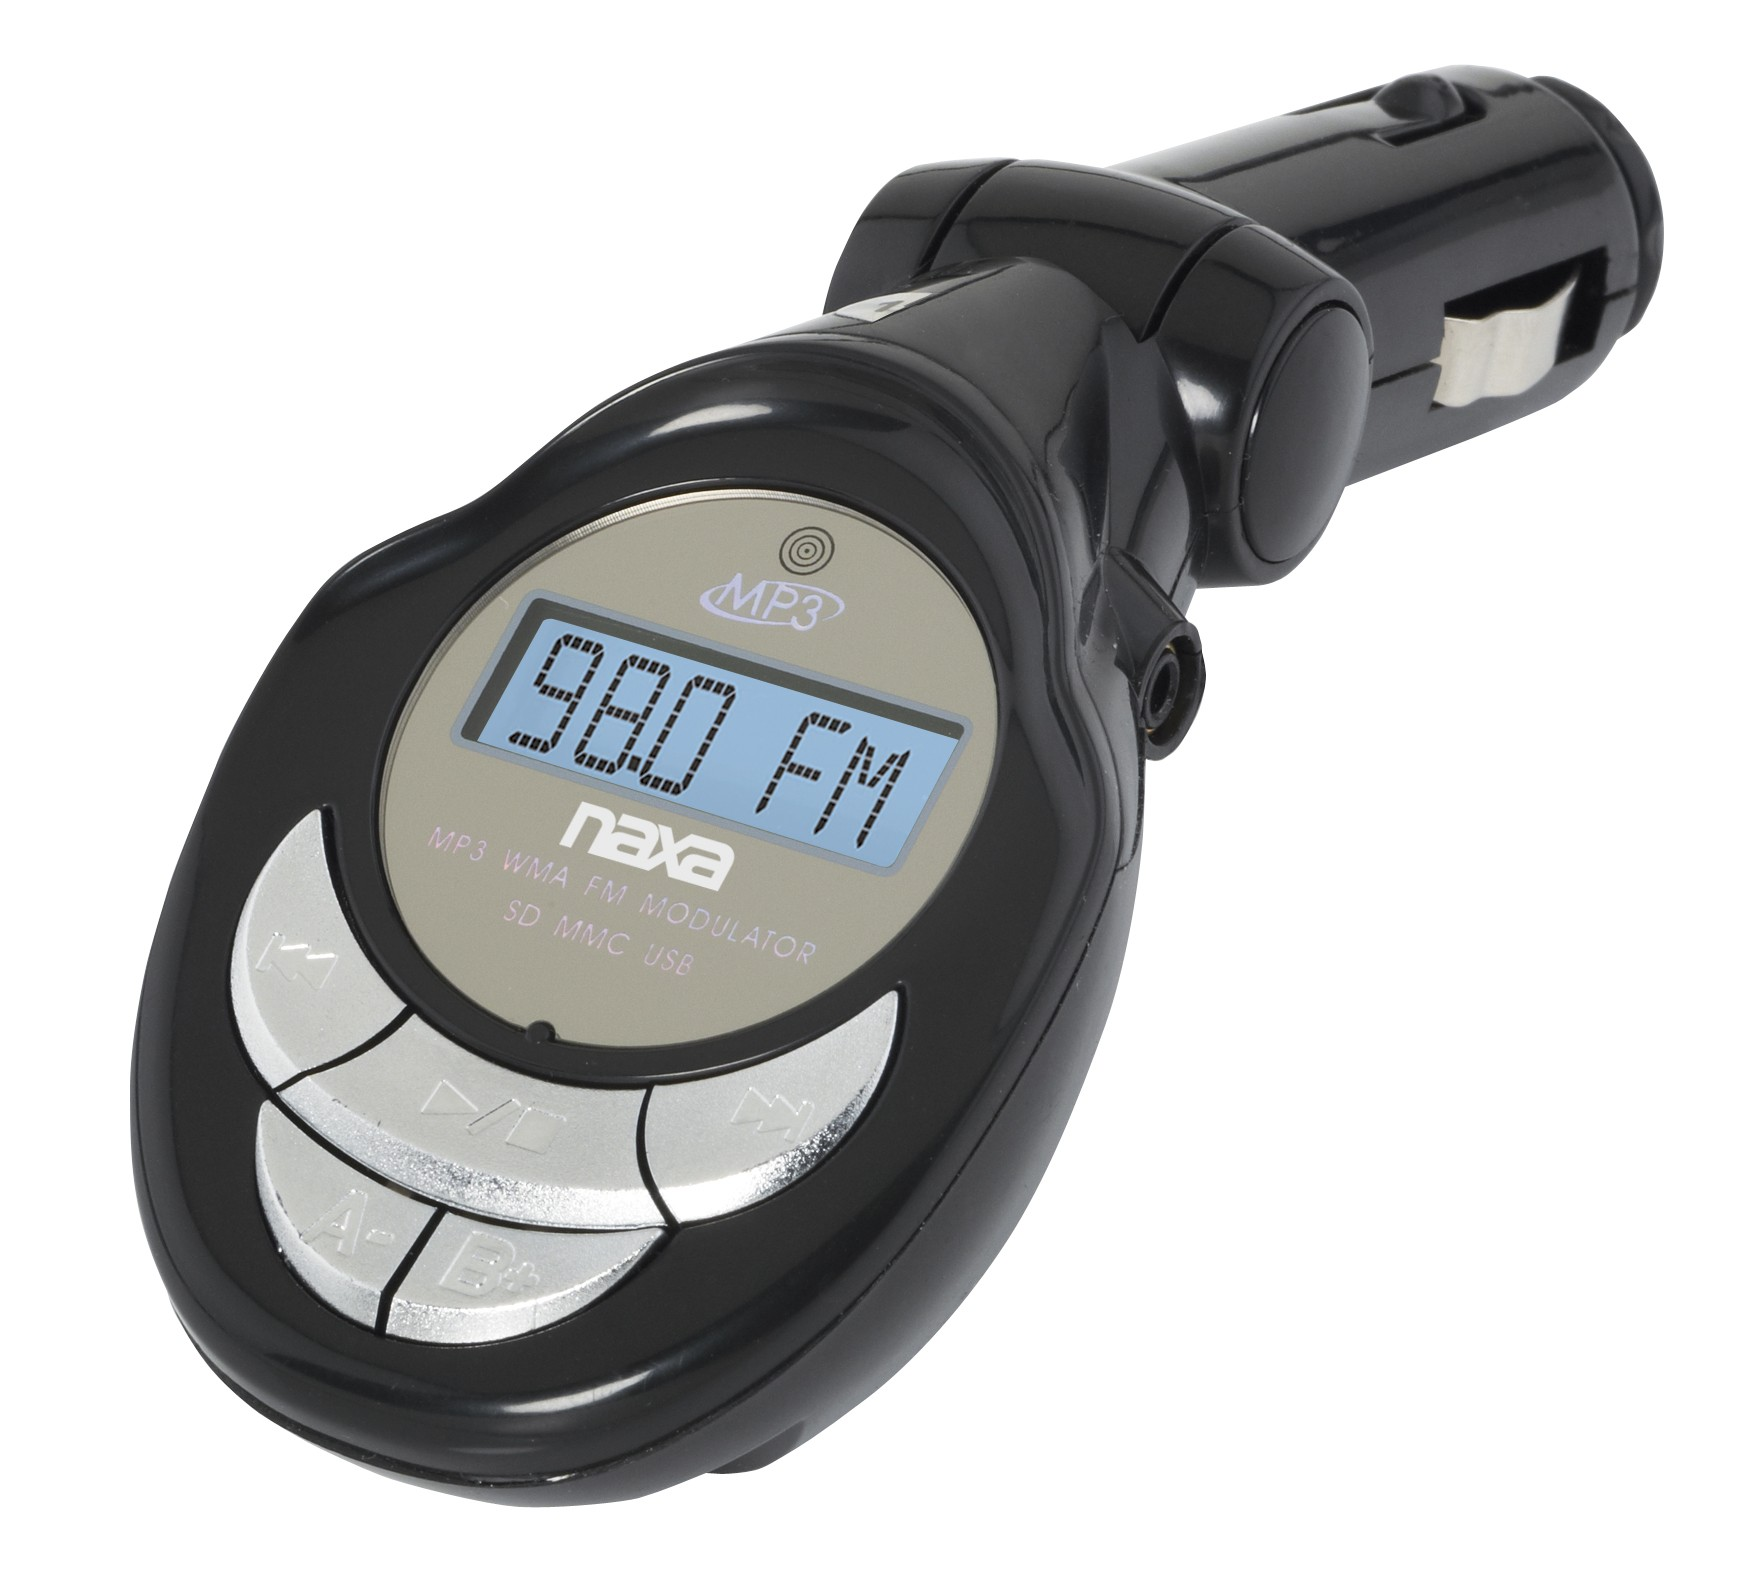 Wireless FM Transmitter for the Car with Built-in MP3 Player